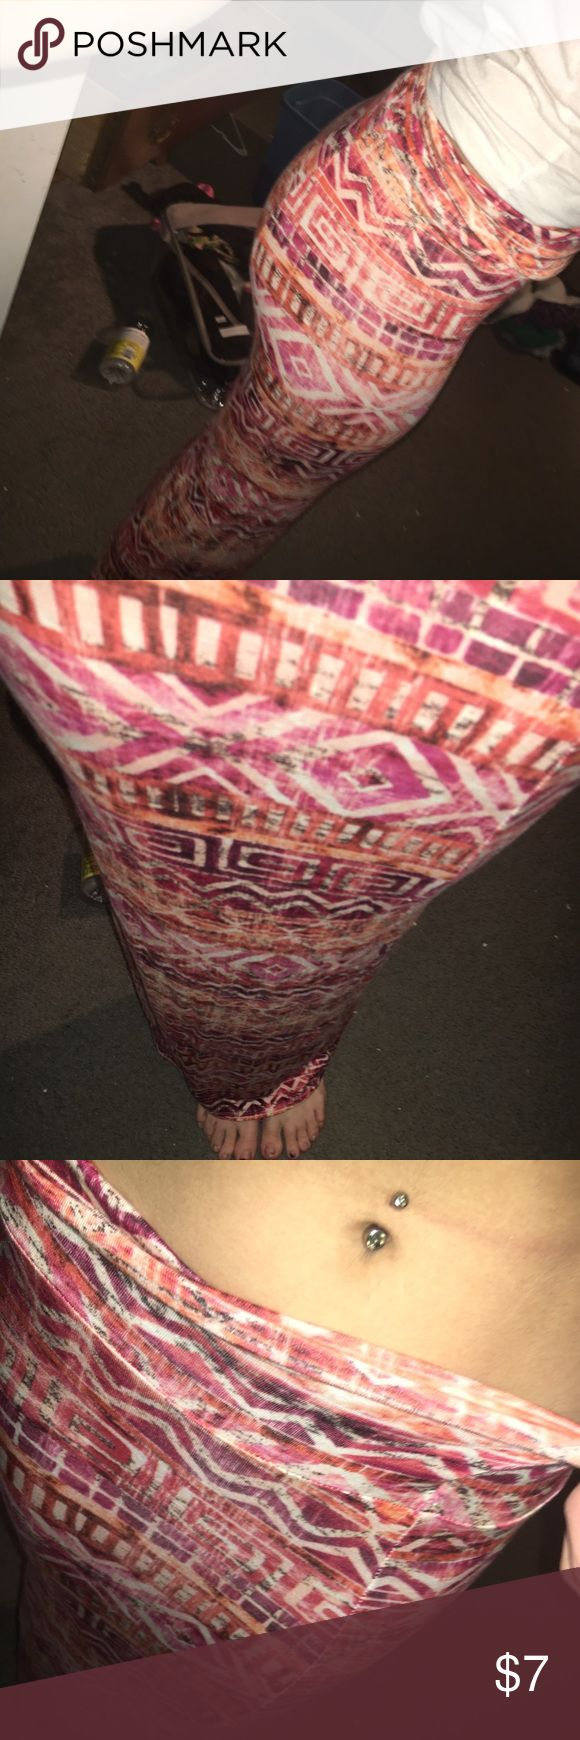 Aztec maxi skirt Super fun and is fitting! NWOT not listed brand Free People Skirts Maxi